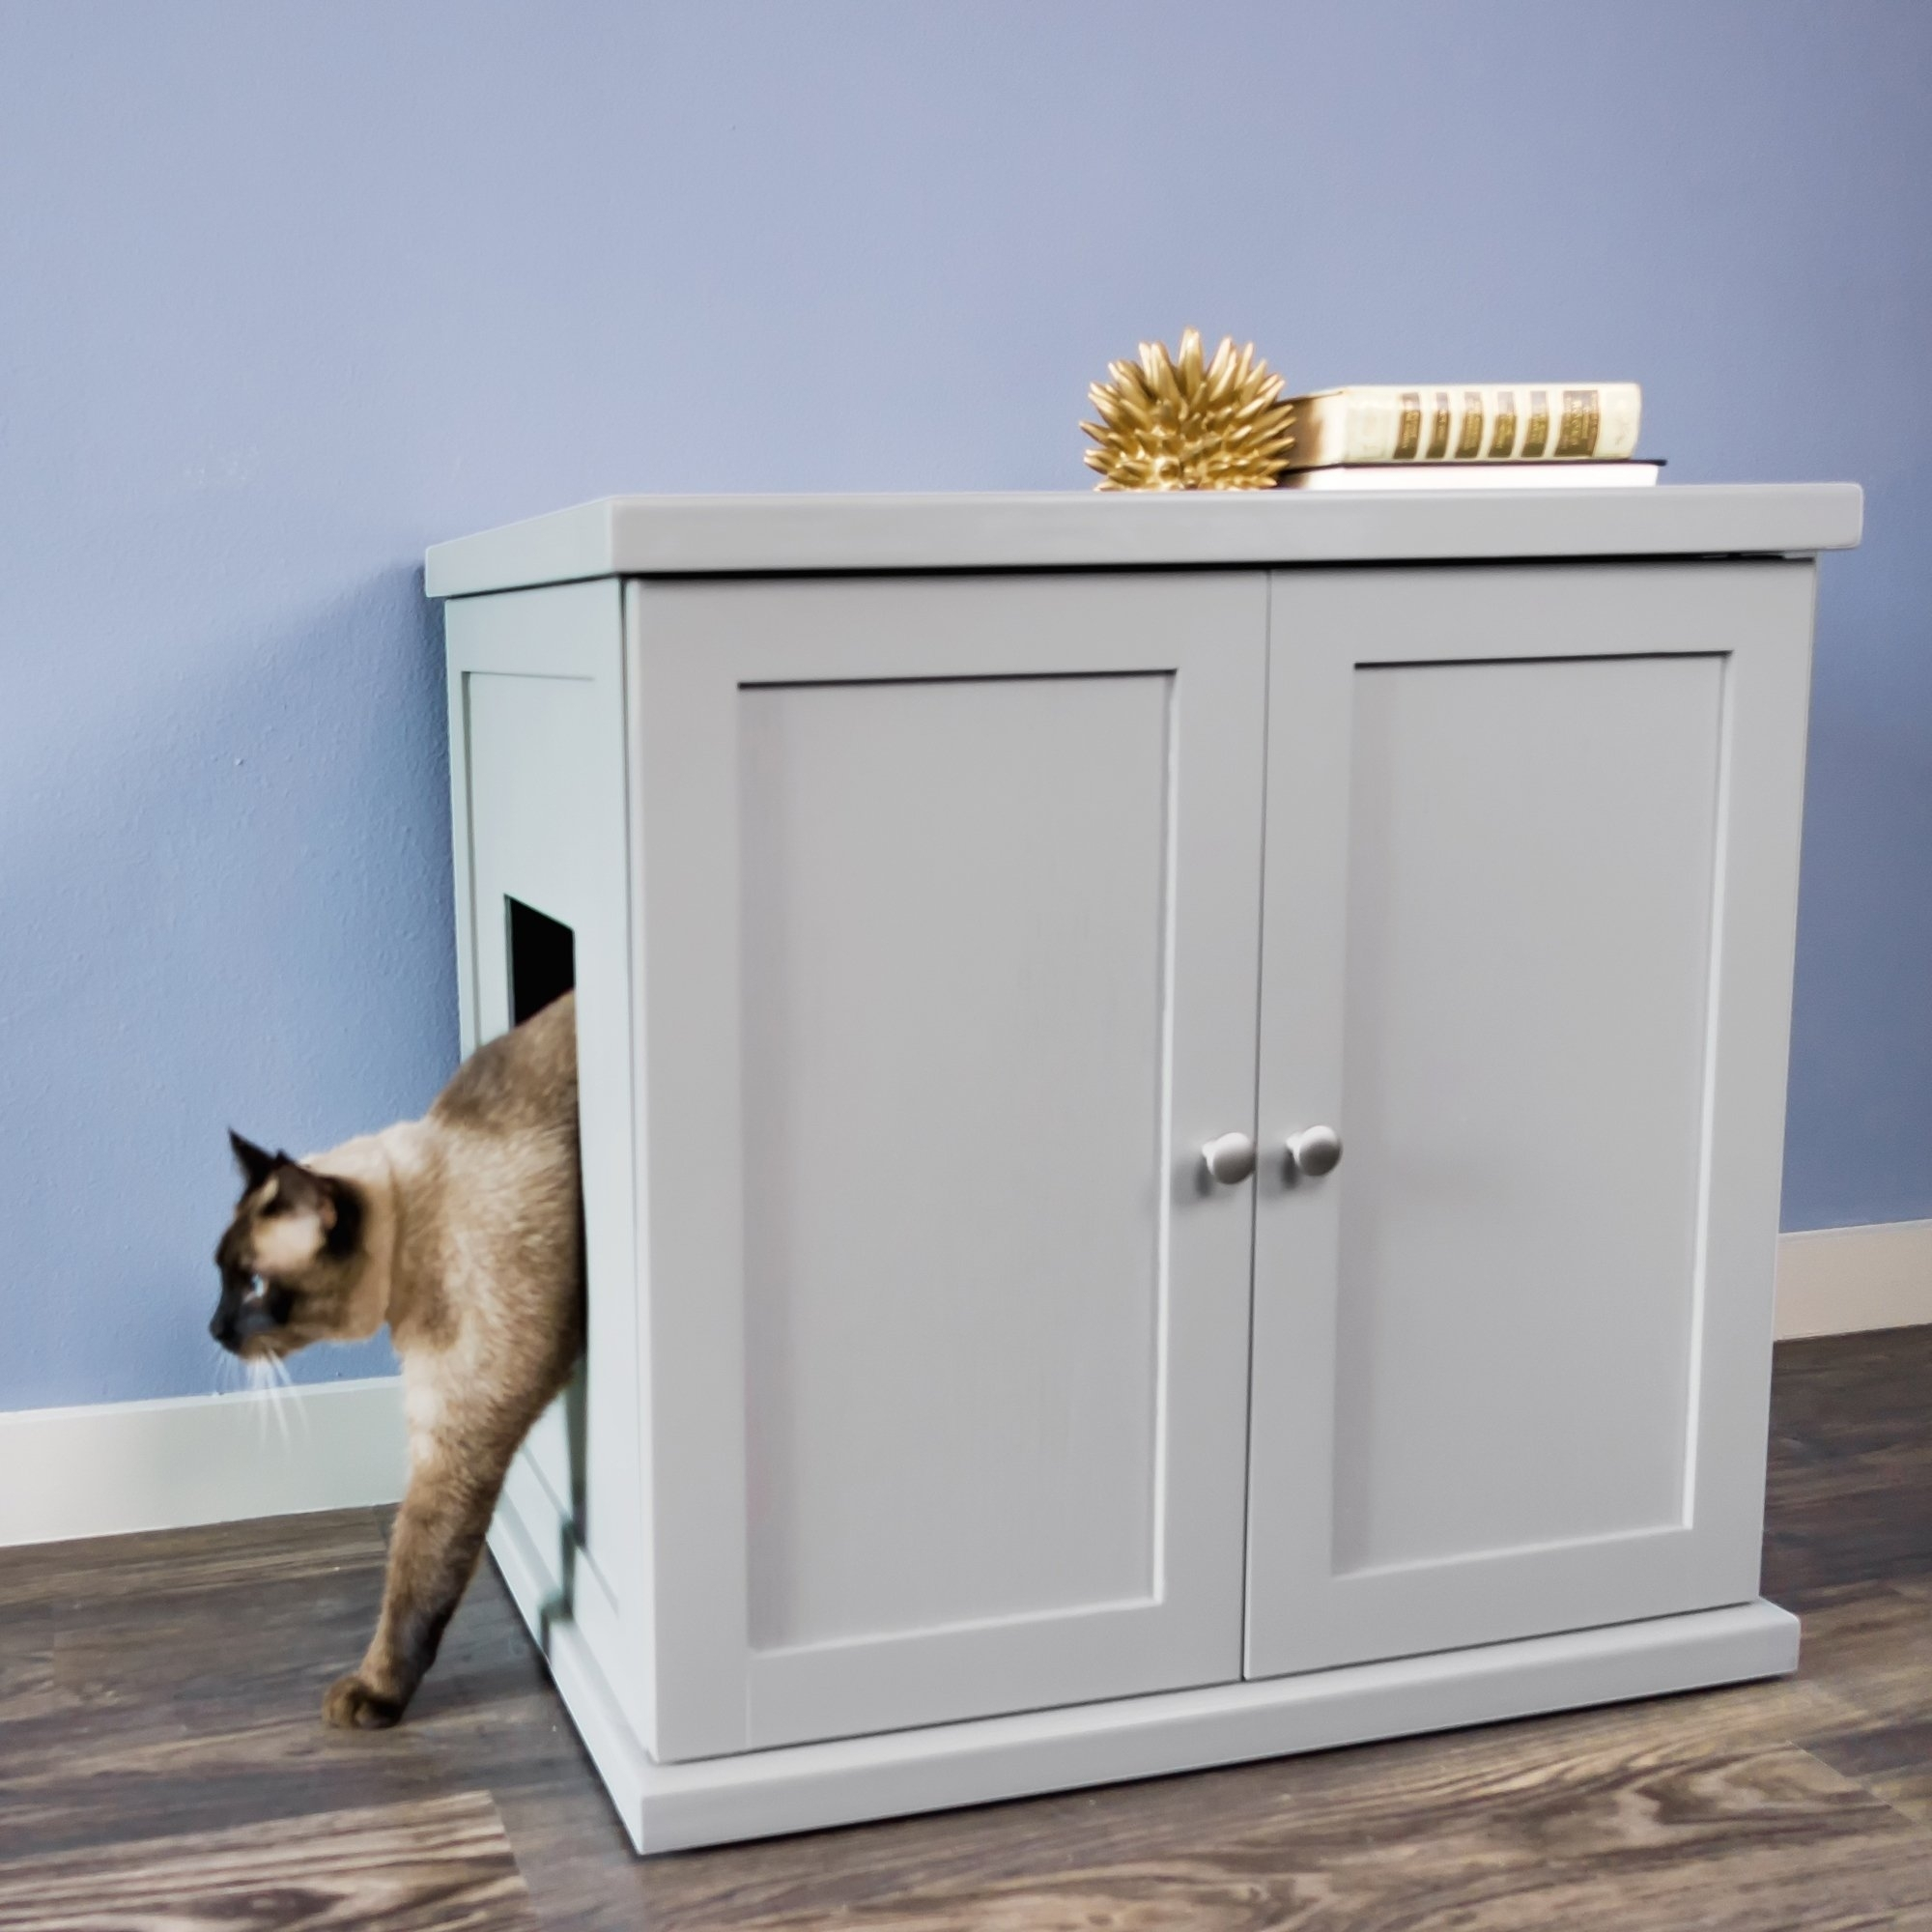 Shop The Refined Feline's Kitty Enclosed Wooden End Table & Litter with regard to Jigsaw Refinement Sideboards (Image 11 of 30)